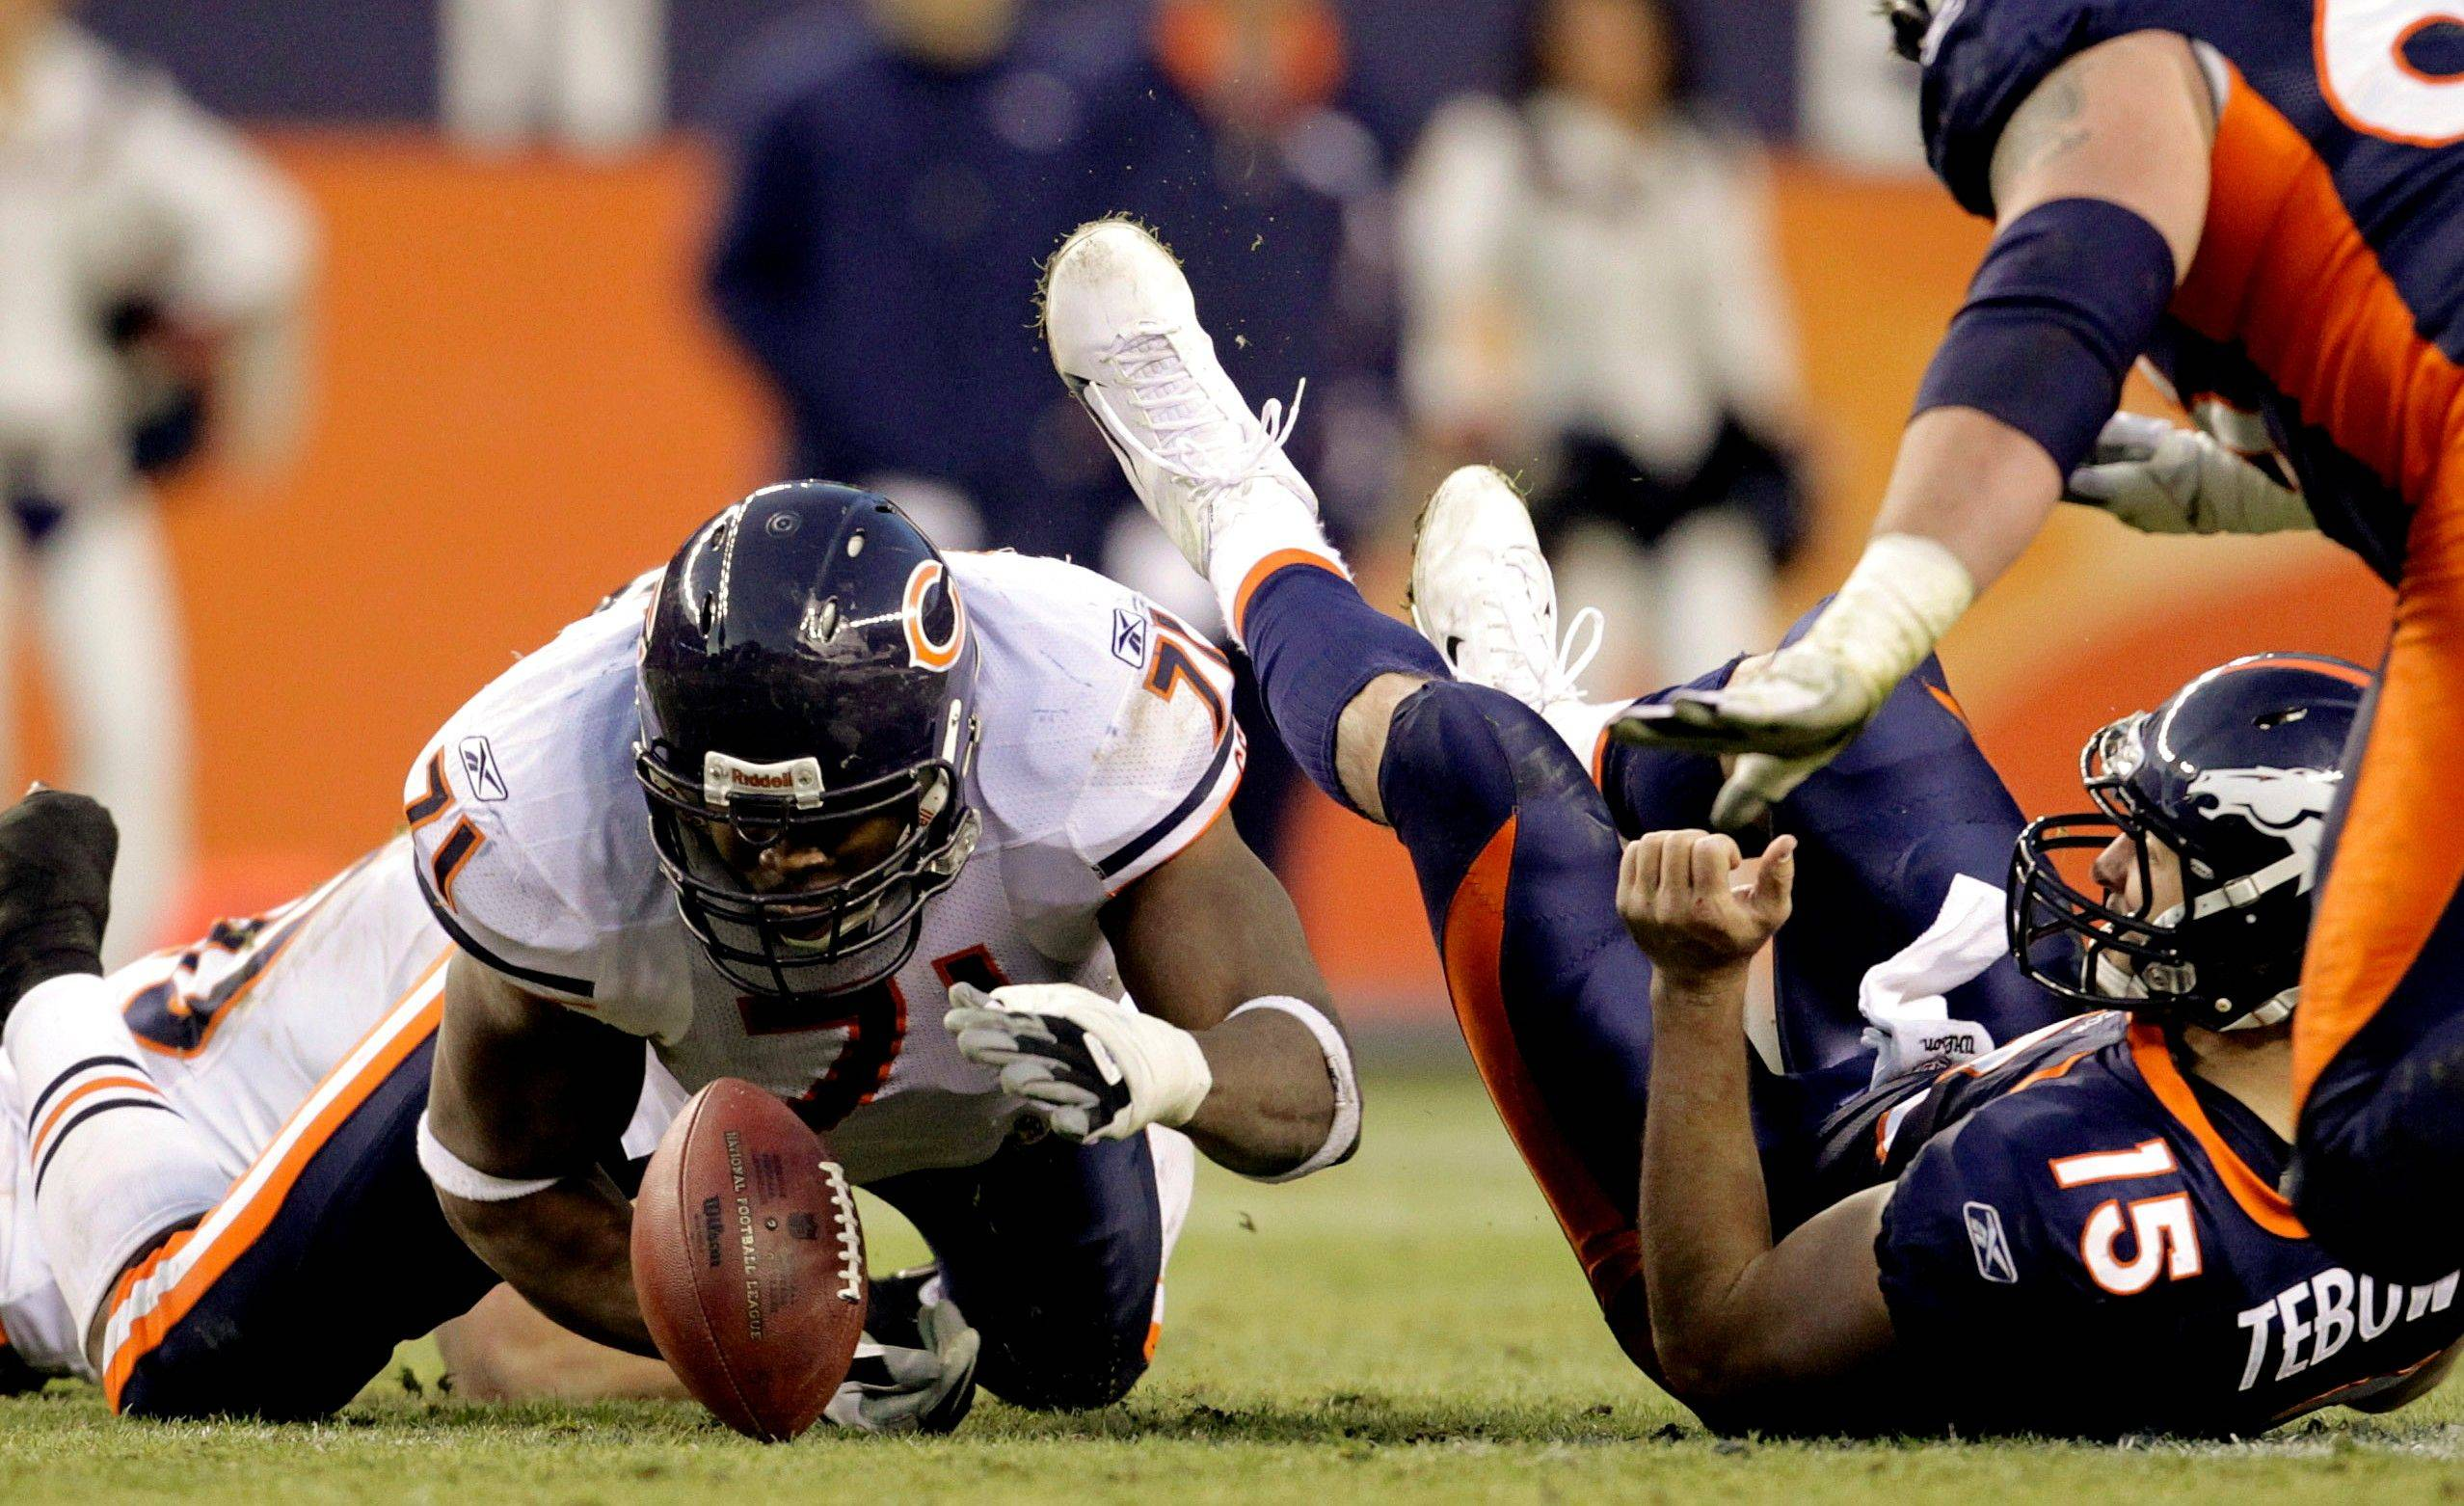 Chicago Bears defensive end Israel Idonije (71) hits Denver Broncos quarterback Tim Tebow (15), causing him to fumble the ball in the fourth quarter. Idonije recovered the fumble on the play.